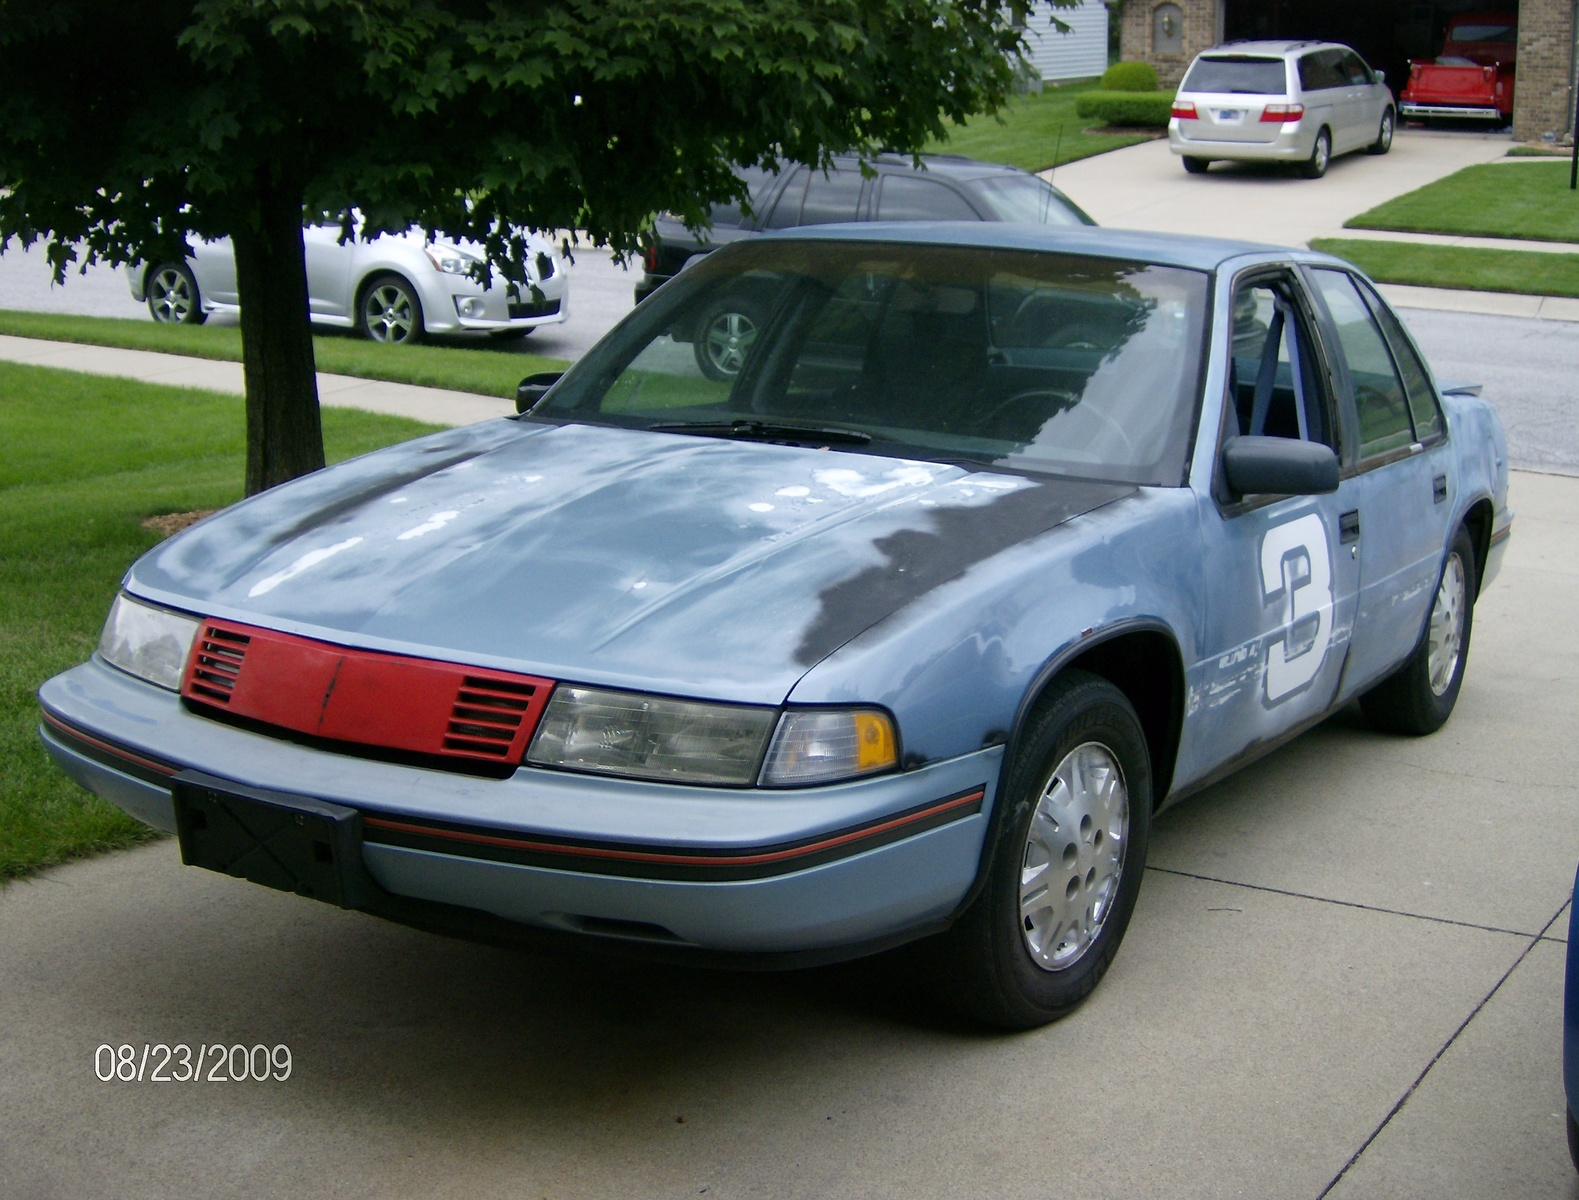 1990 Chevrolet Lumina 4 Dr Euro Sedan picture